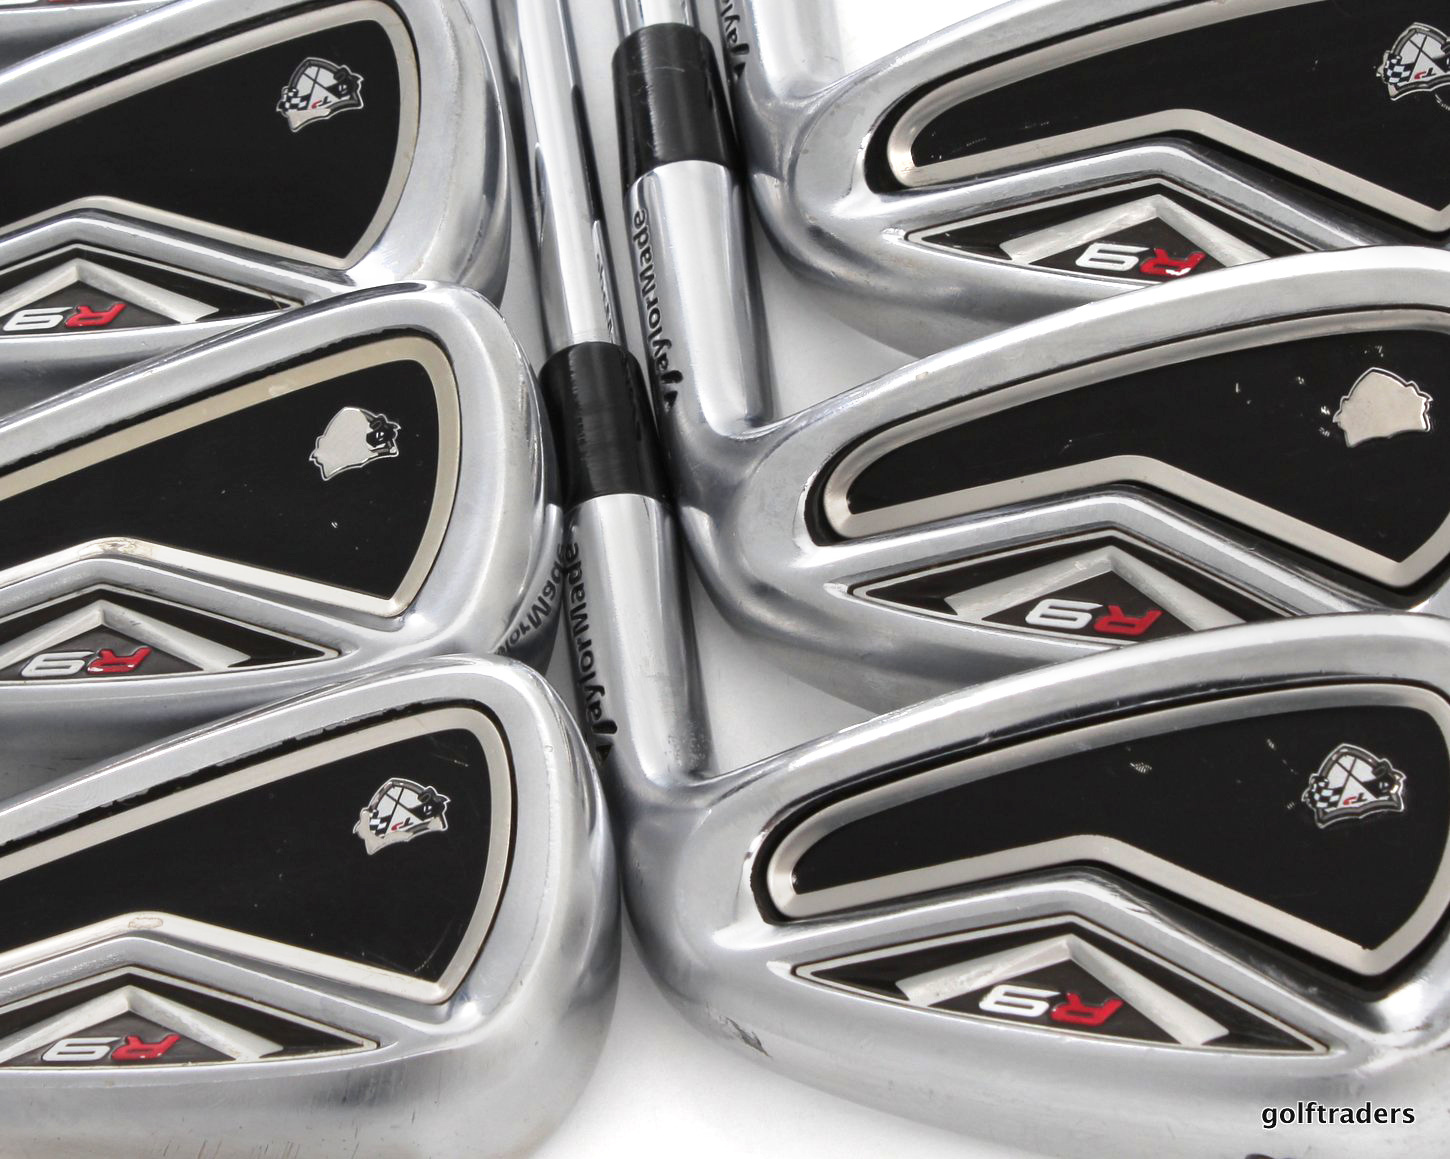 Taylormade R9 Irons Specifications